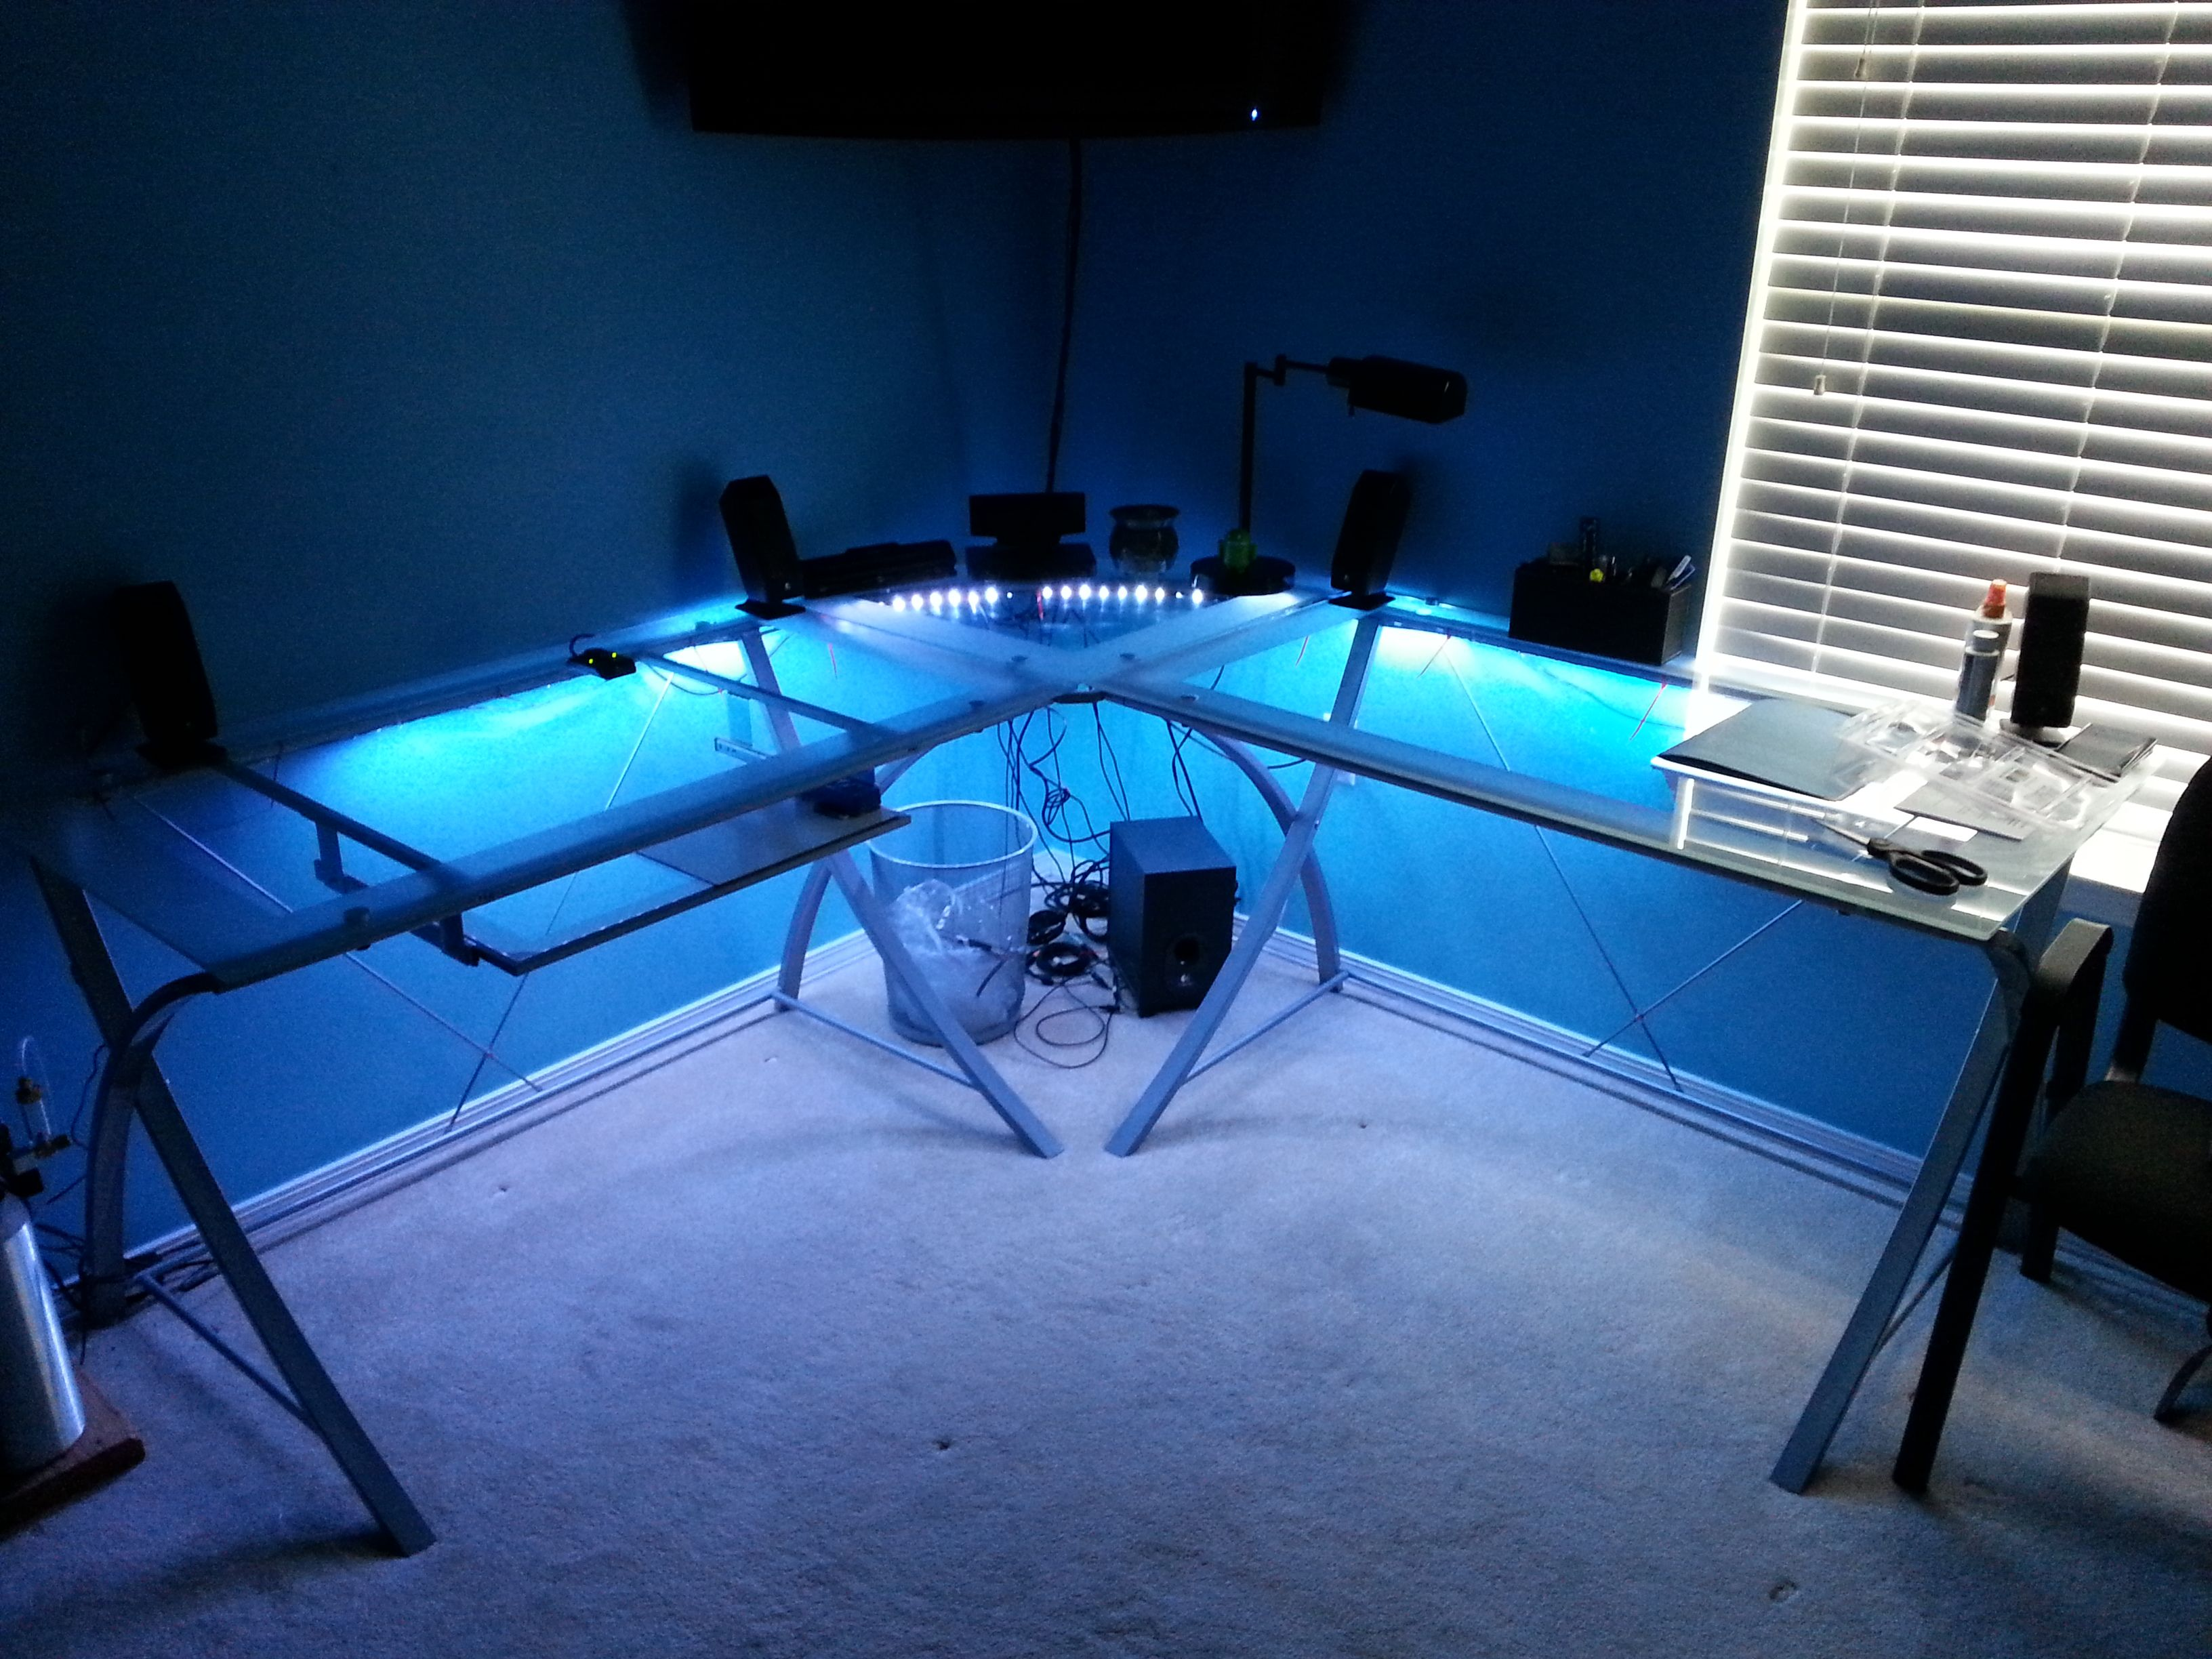 LED Desk lighting | Ultimate gaming set up ideas ...